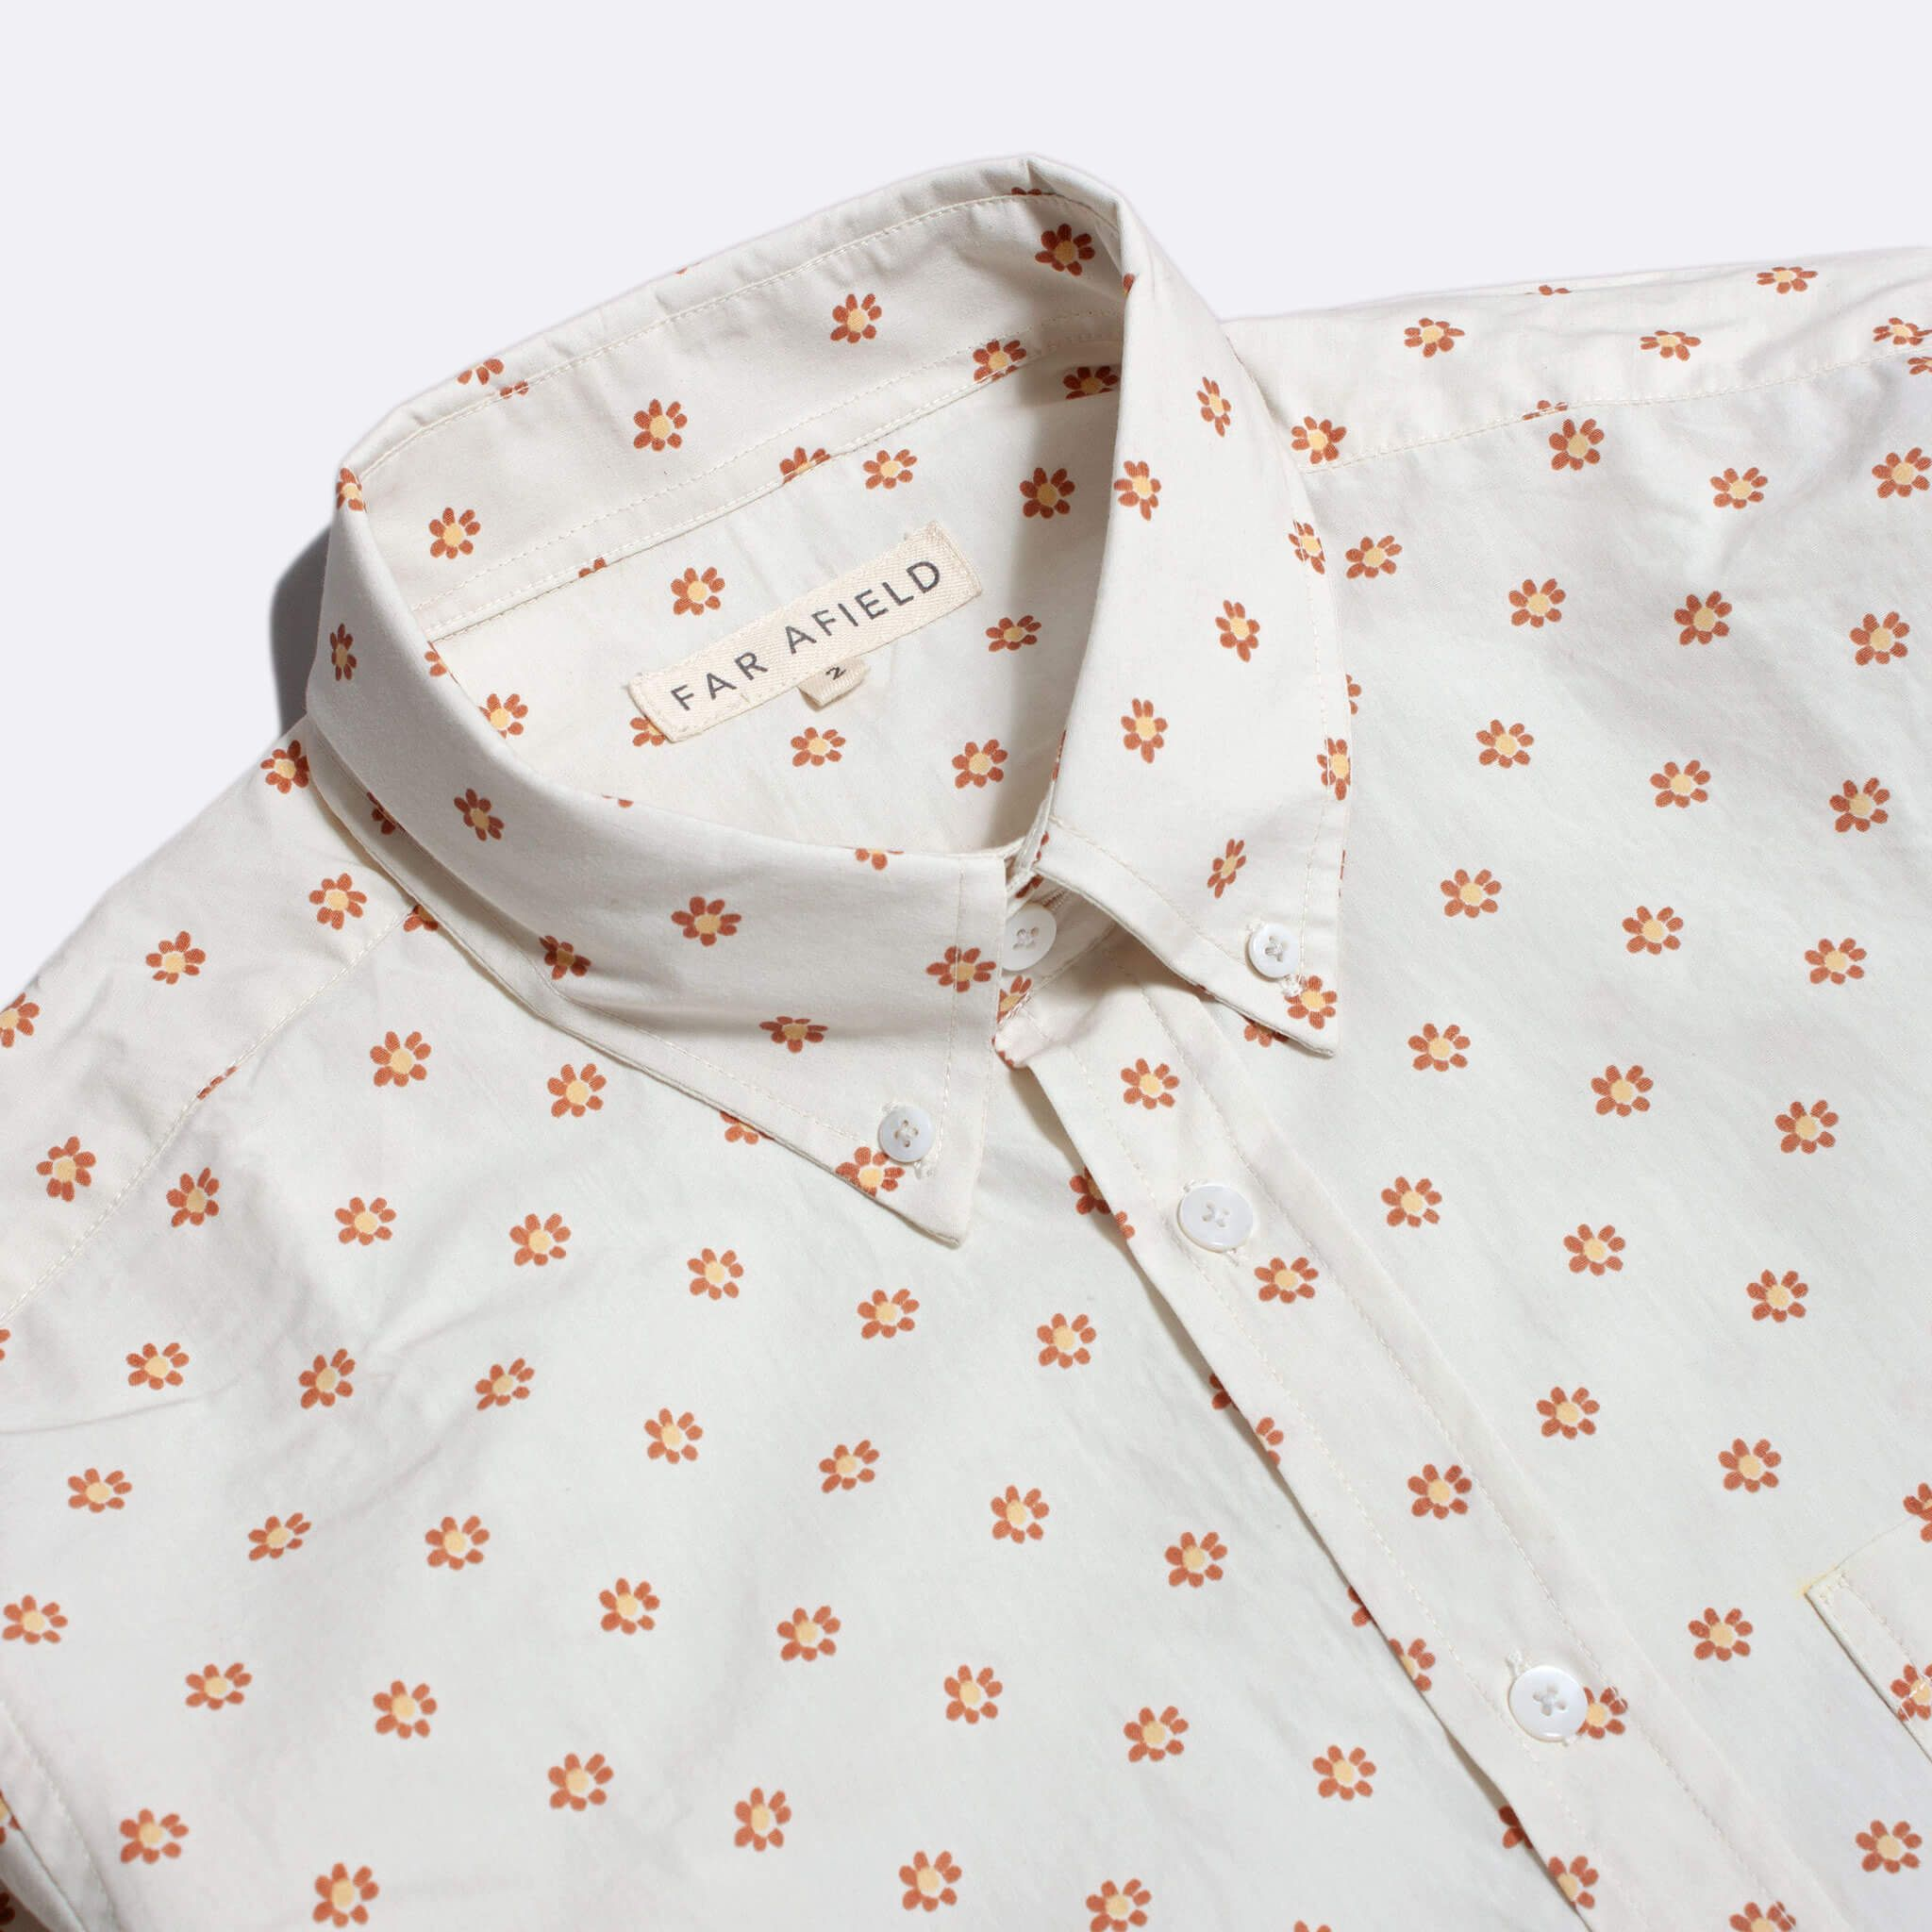 Far Afield Mod Button Down Short Sleeve Shirt a White BCI Cotton Flower Power Repeat Pattern Print Fabric Smart Casual 2